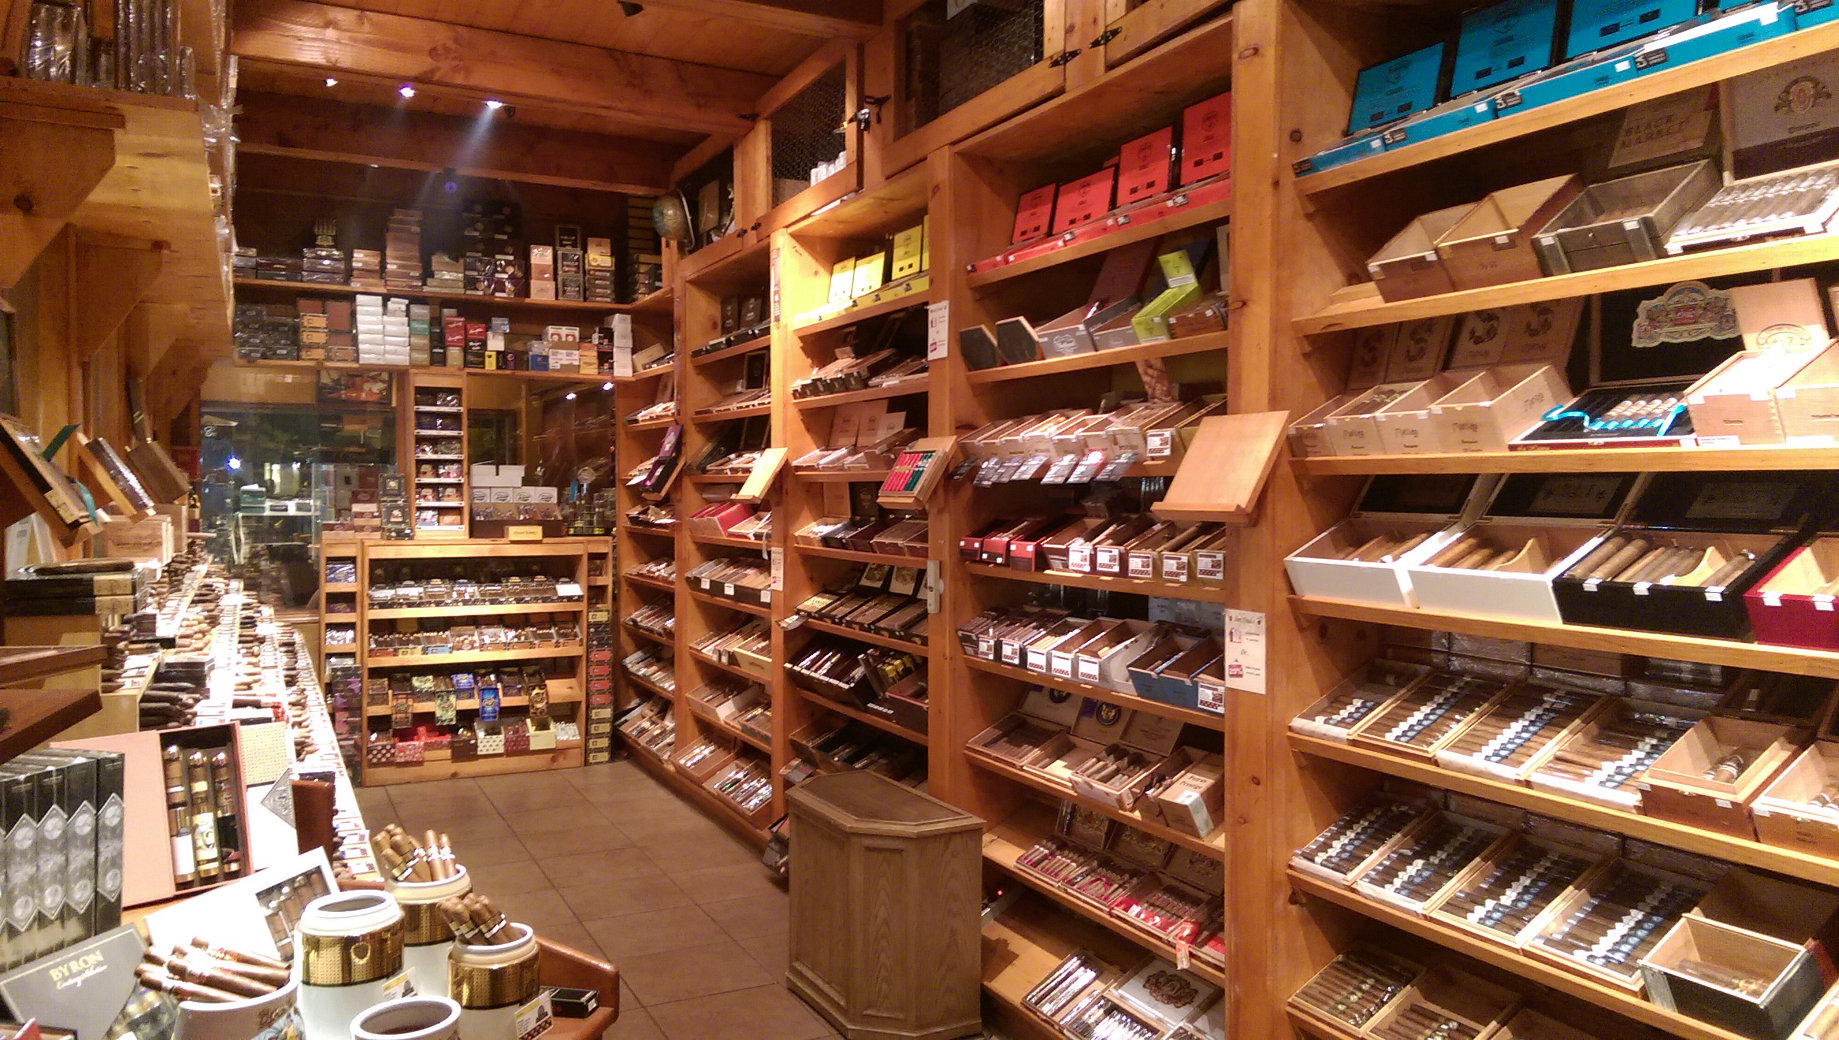 Walk in Humidor guaranteed to make you go WOW.  More inventory than you will ever need to find that perfect cigar.  At your cigar store you will find the latest in exiting new cigar brands like  El Gueguense cigr by Foundation cigar Co ,   Dapper Cigars , Black Works,  La Flor de Dominicana ,  Tatuaje ,  Illusion ,    Drew Estate Kuba Kuba , blondie,  Rocky Patel edje  ,  Davidof f,  Bloodline ,  Esteban Carreras ,  Padrone ,  just to name a few.